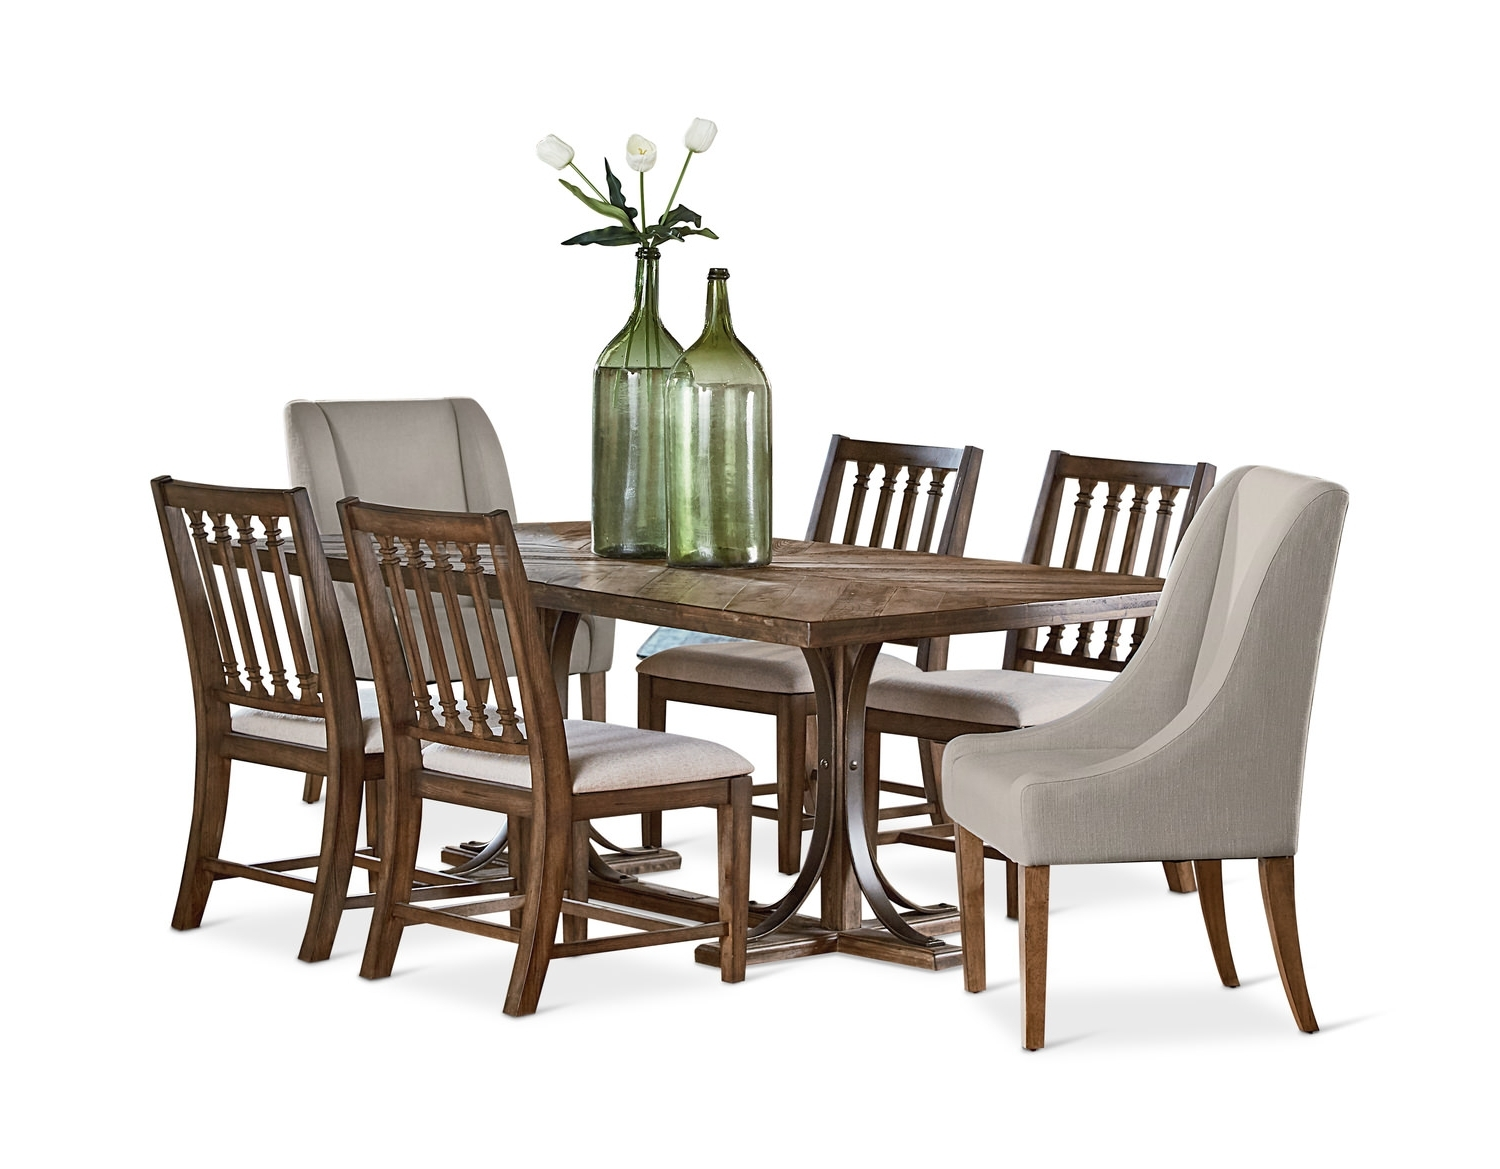 Hom Furniture Intended For Widely Used Magnolia Home Ellipse Cocktail Tables By Joanna Gaines (View 5 of 20)